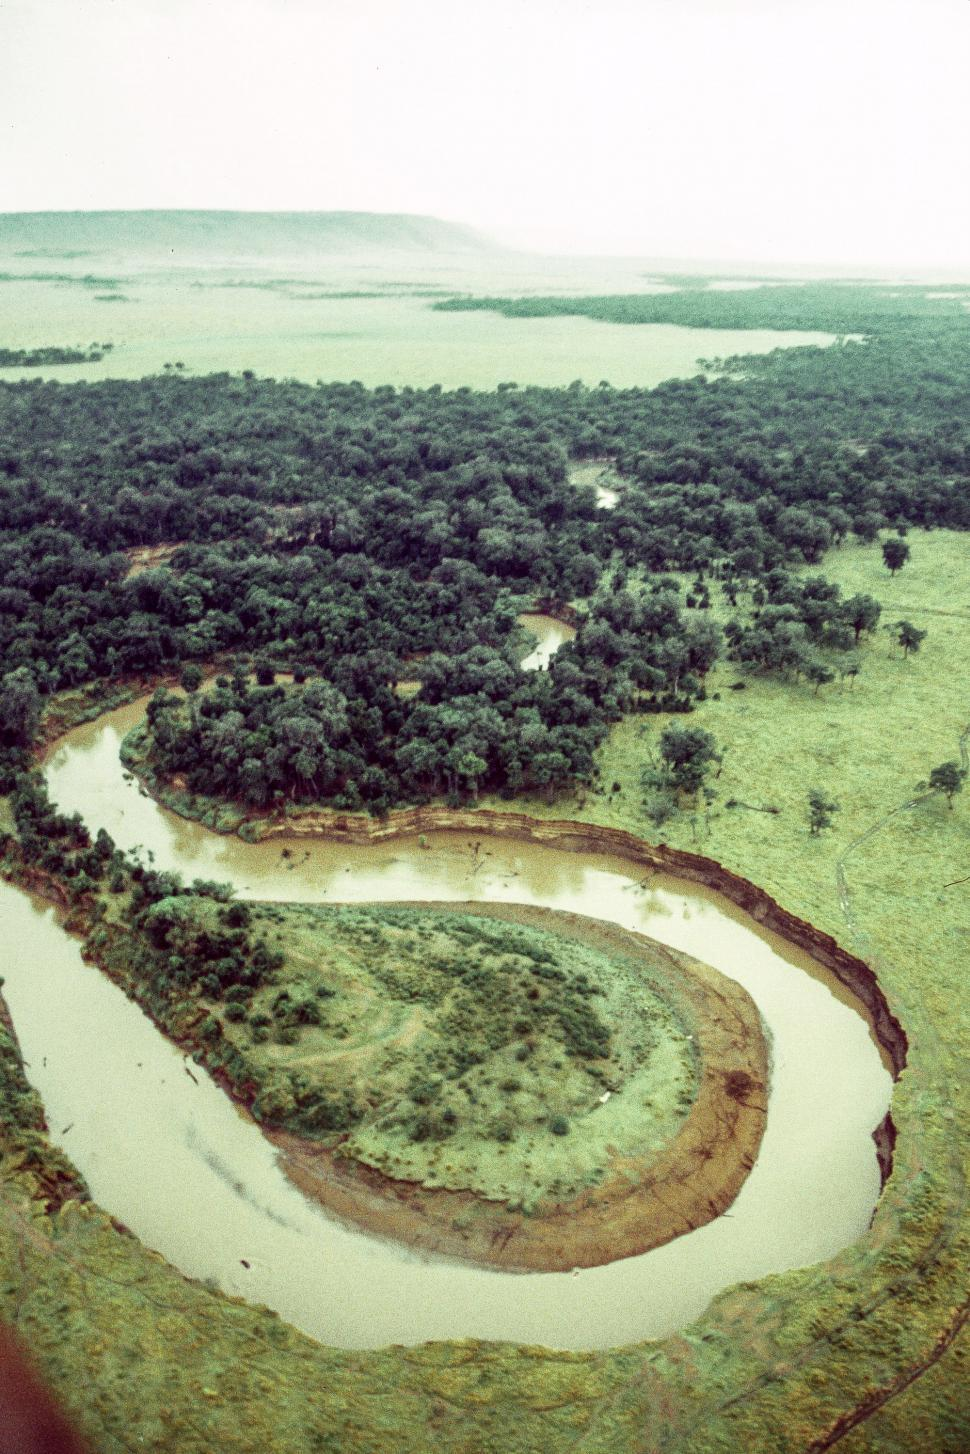 Download Free Stock HD Photo of Mara River in Tanzania Online